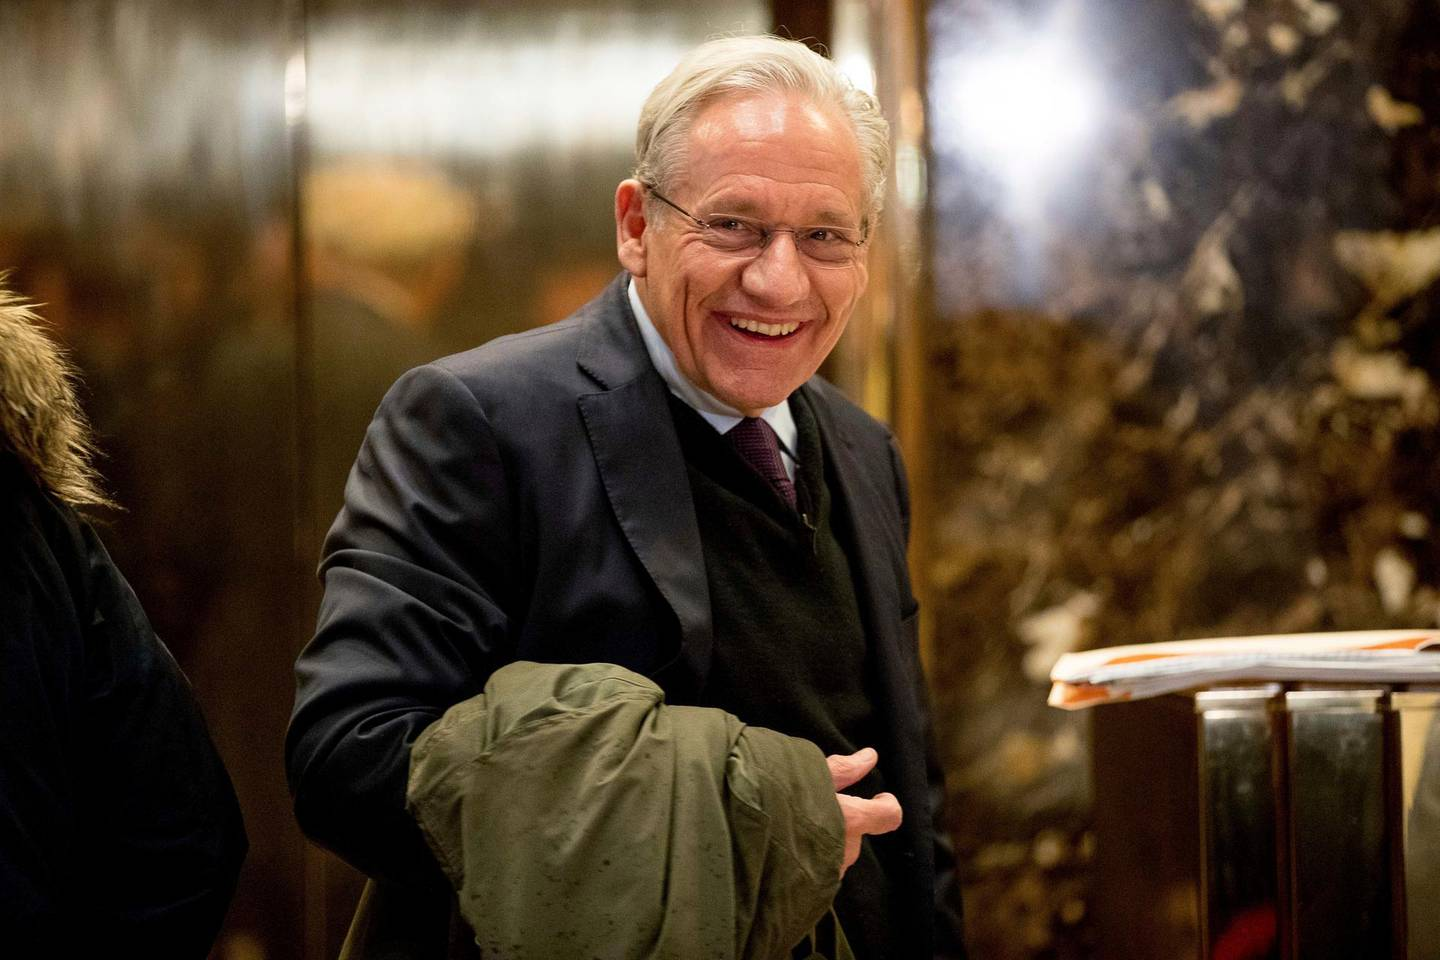 FILE - In this Jan. 3, 2017, file photo The Washington Post associate editor Bob Woodward arrives at Trump Tower in New York. Woodward, facing widespread criticism for only now revealing President Donald Trump's early concerns about the severity of the coronavirus, told The Associated Press that he needed time to be sure that Trump's private comments from February were accurate. (AP Photo/Andrew Harnik, File)